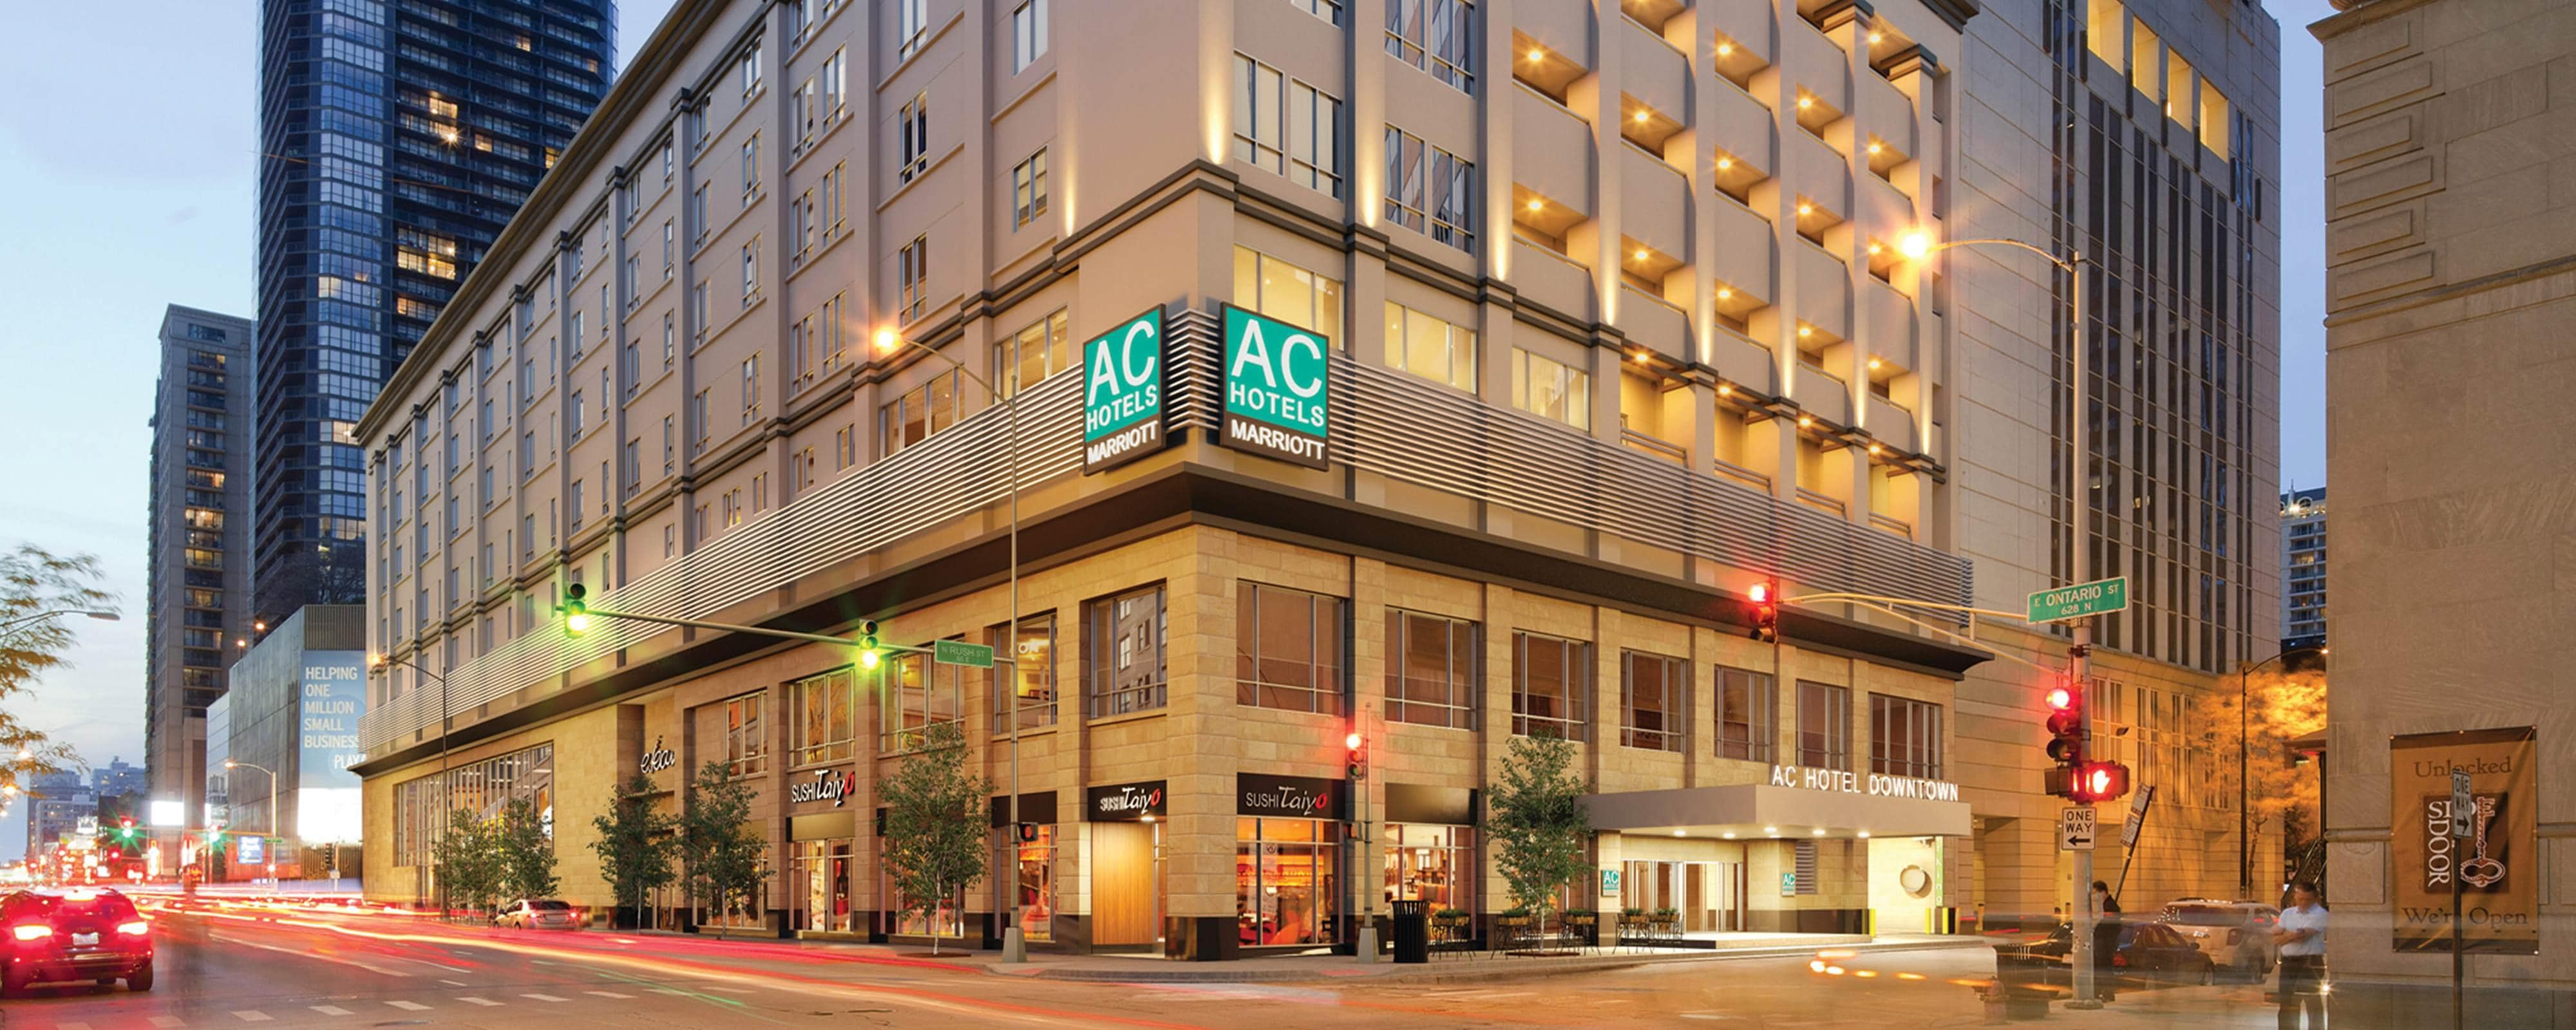 Hotels In Chicago Map.Magnificent Mile Boutique Hotels Downtown Chicago Ac Hotel Chicago